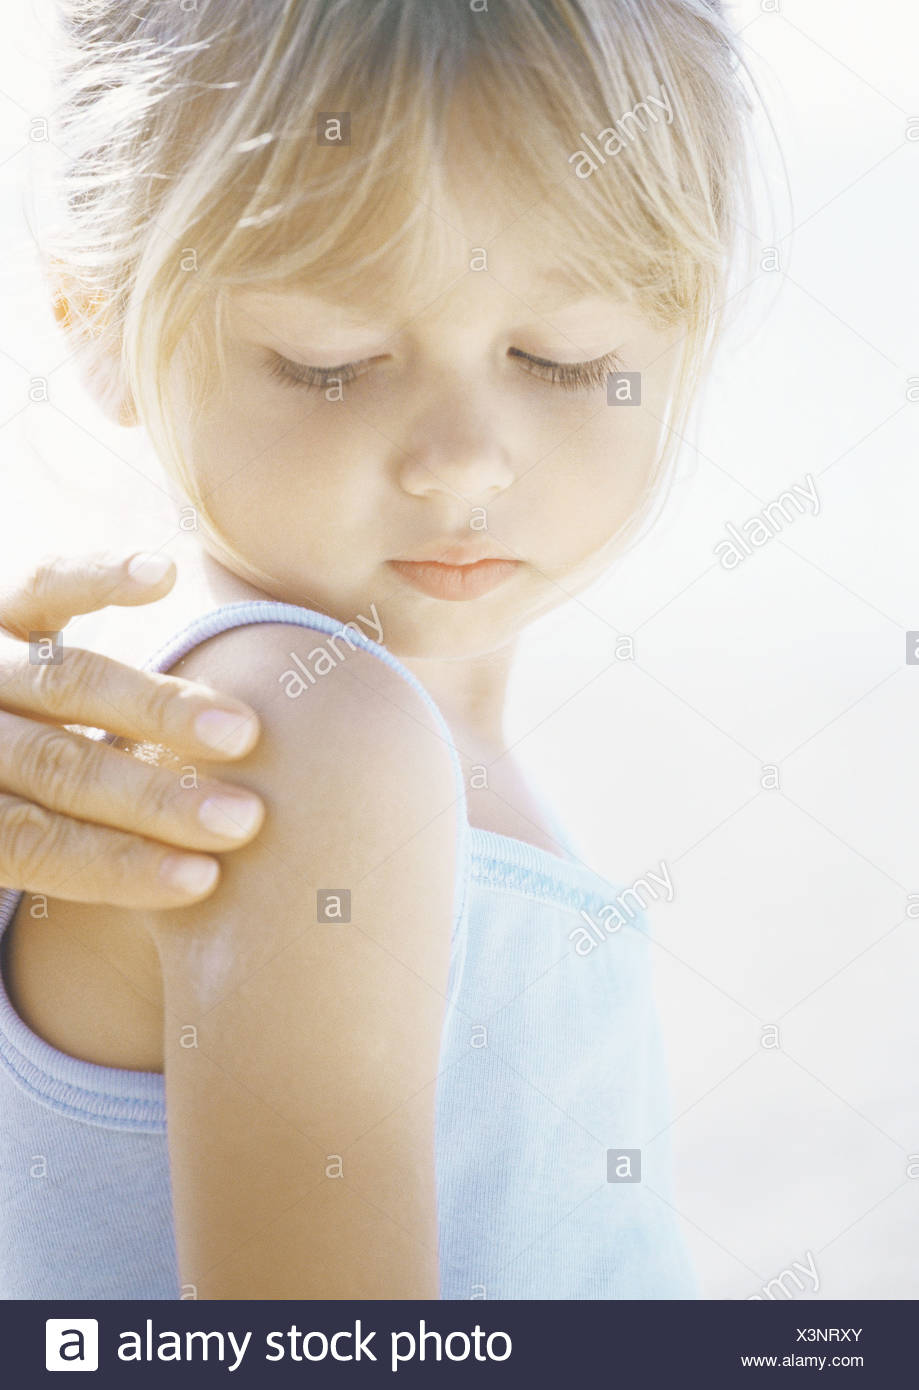 Girl having sunscreen applied to shoulder - Stock Image